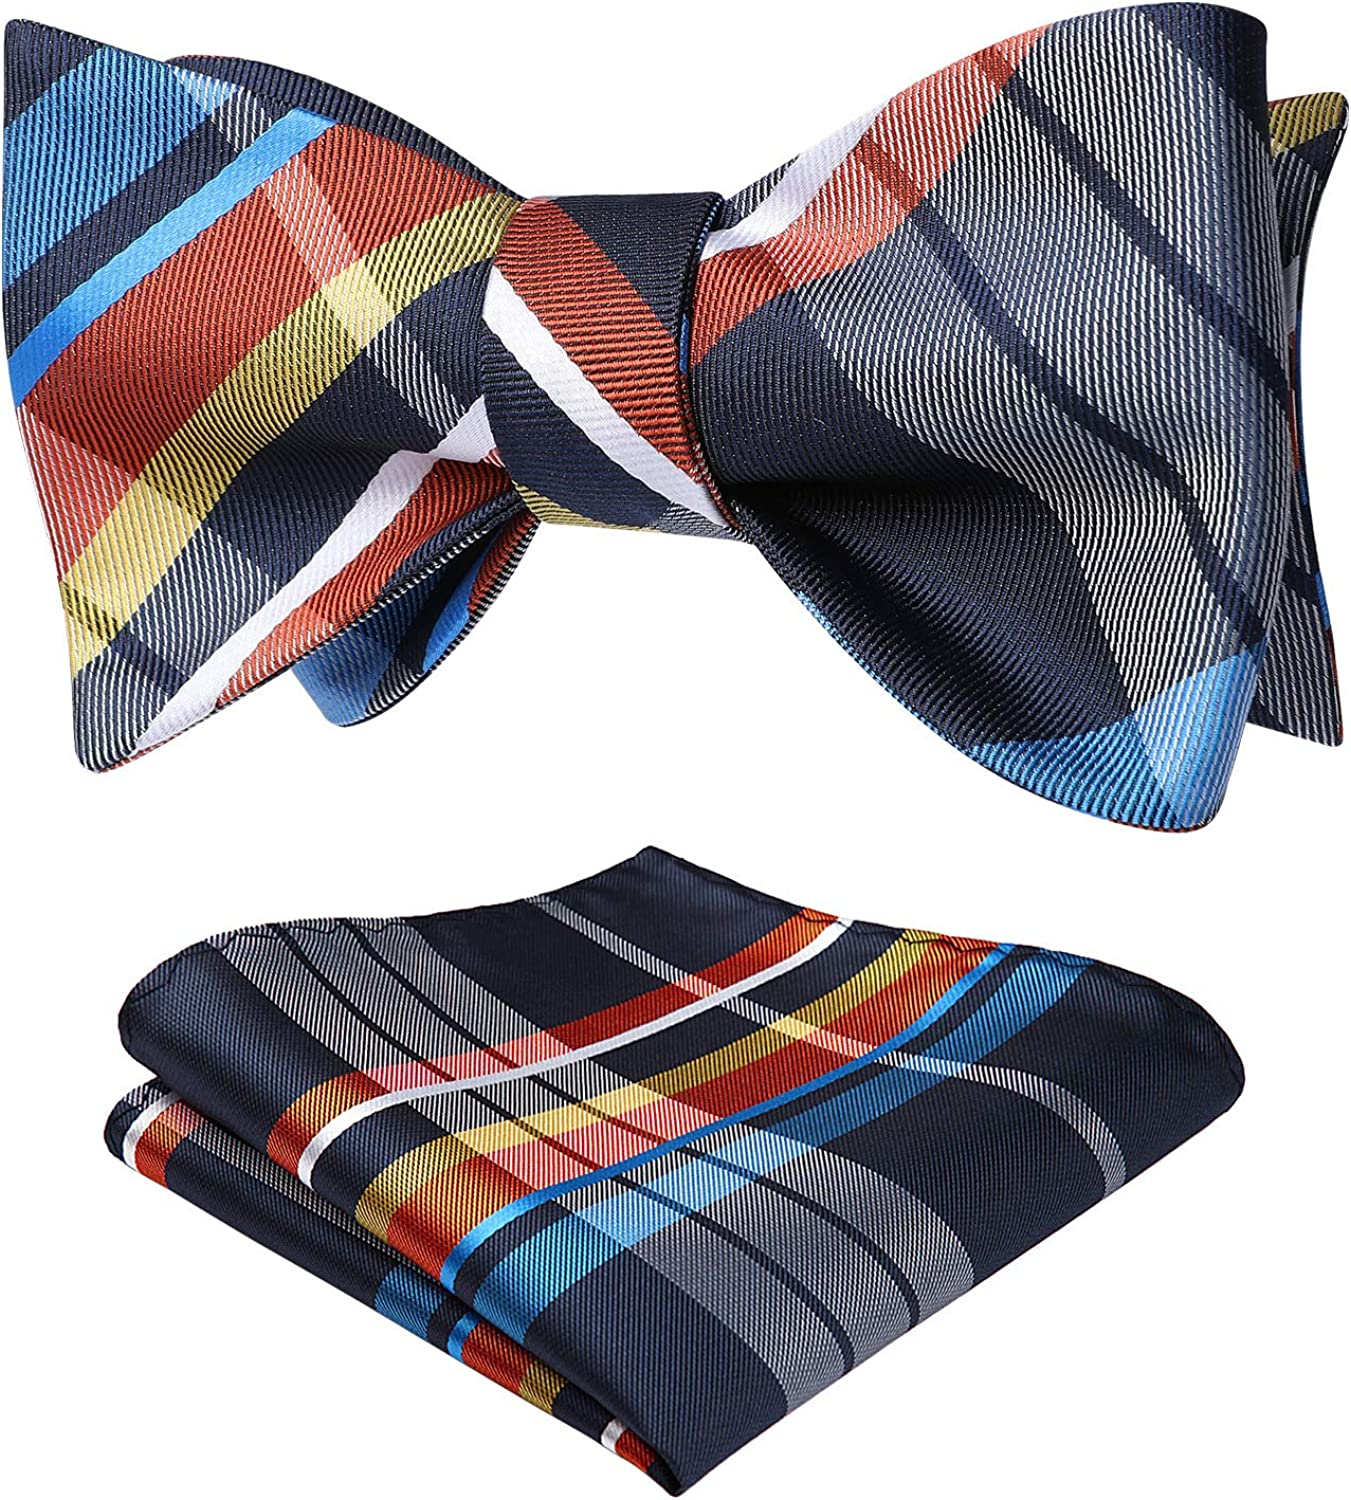 25% OFF Bow Ties for Men Check High material Plaid Self Pocket and Tie Square